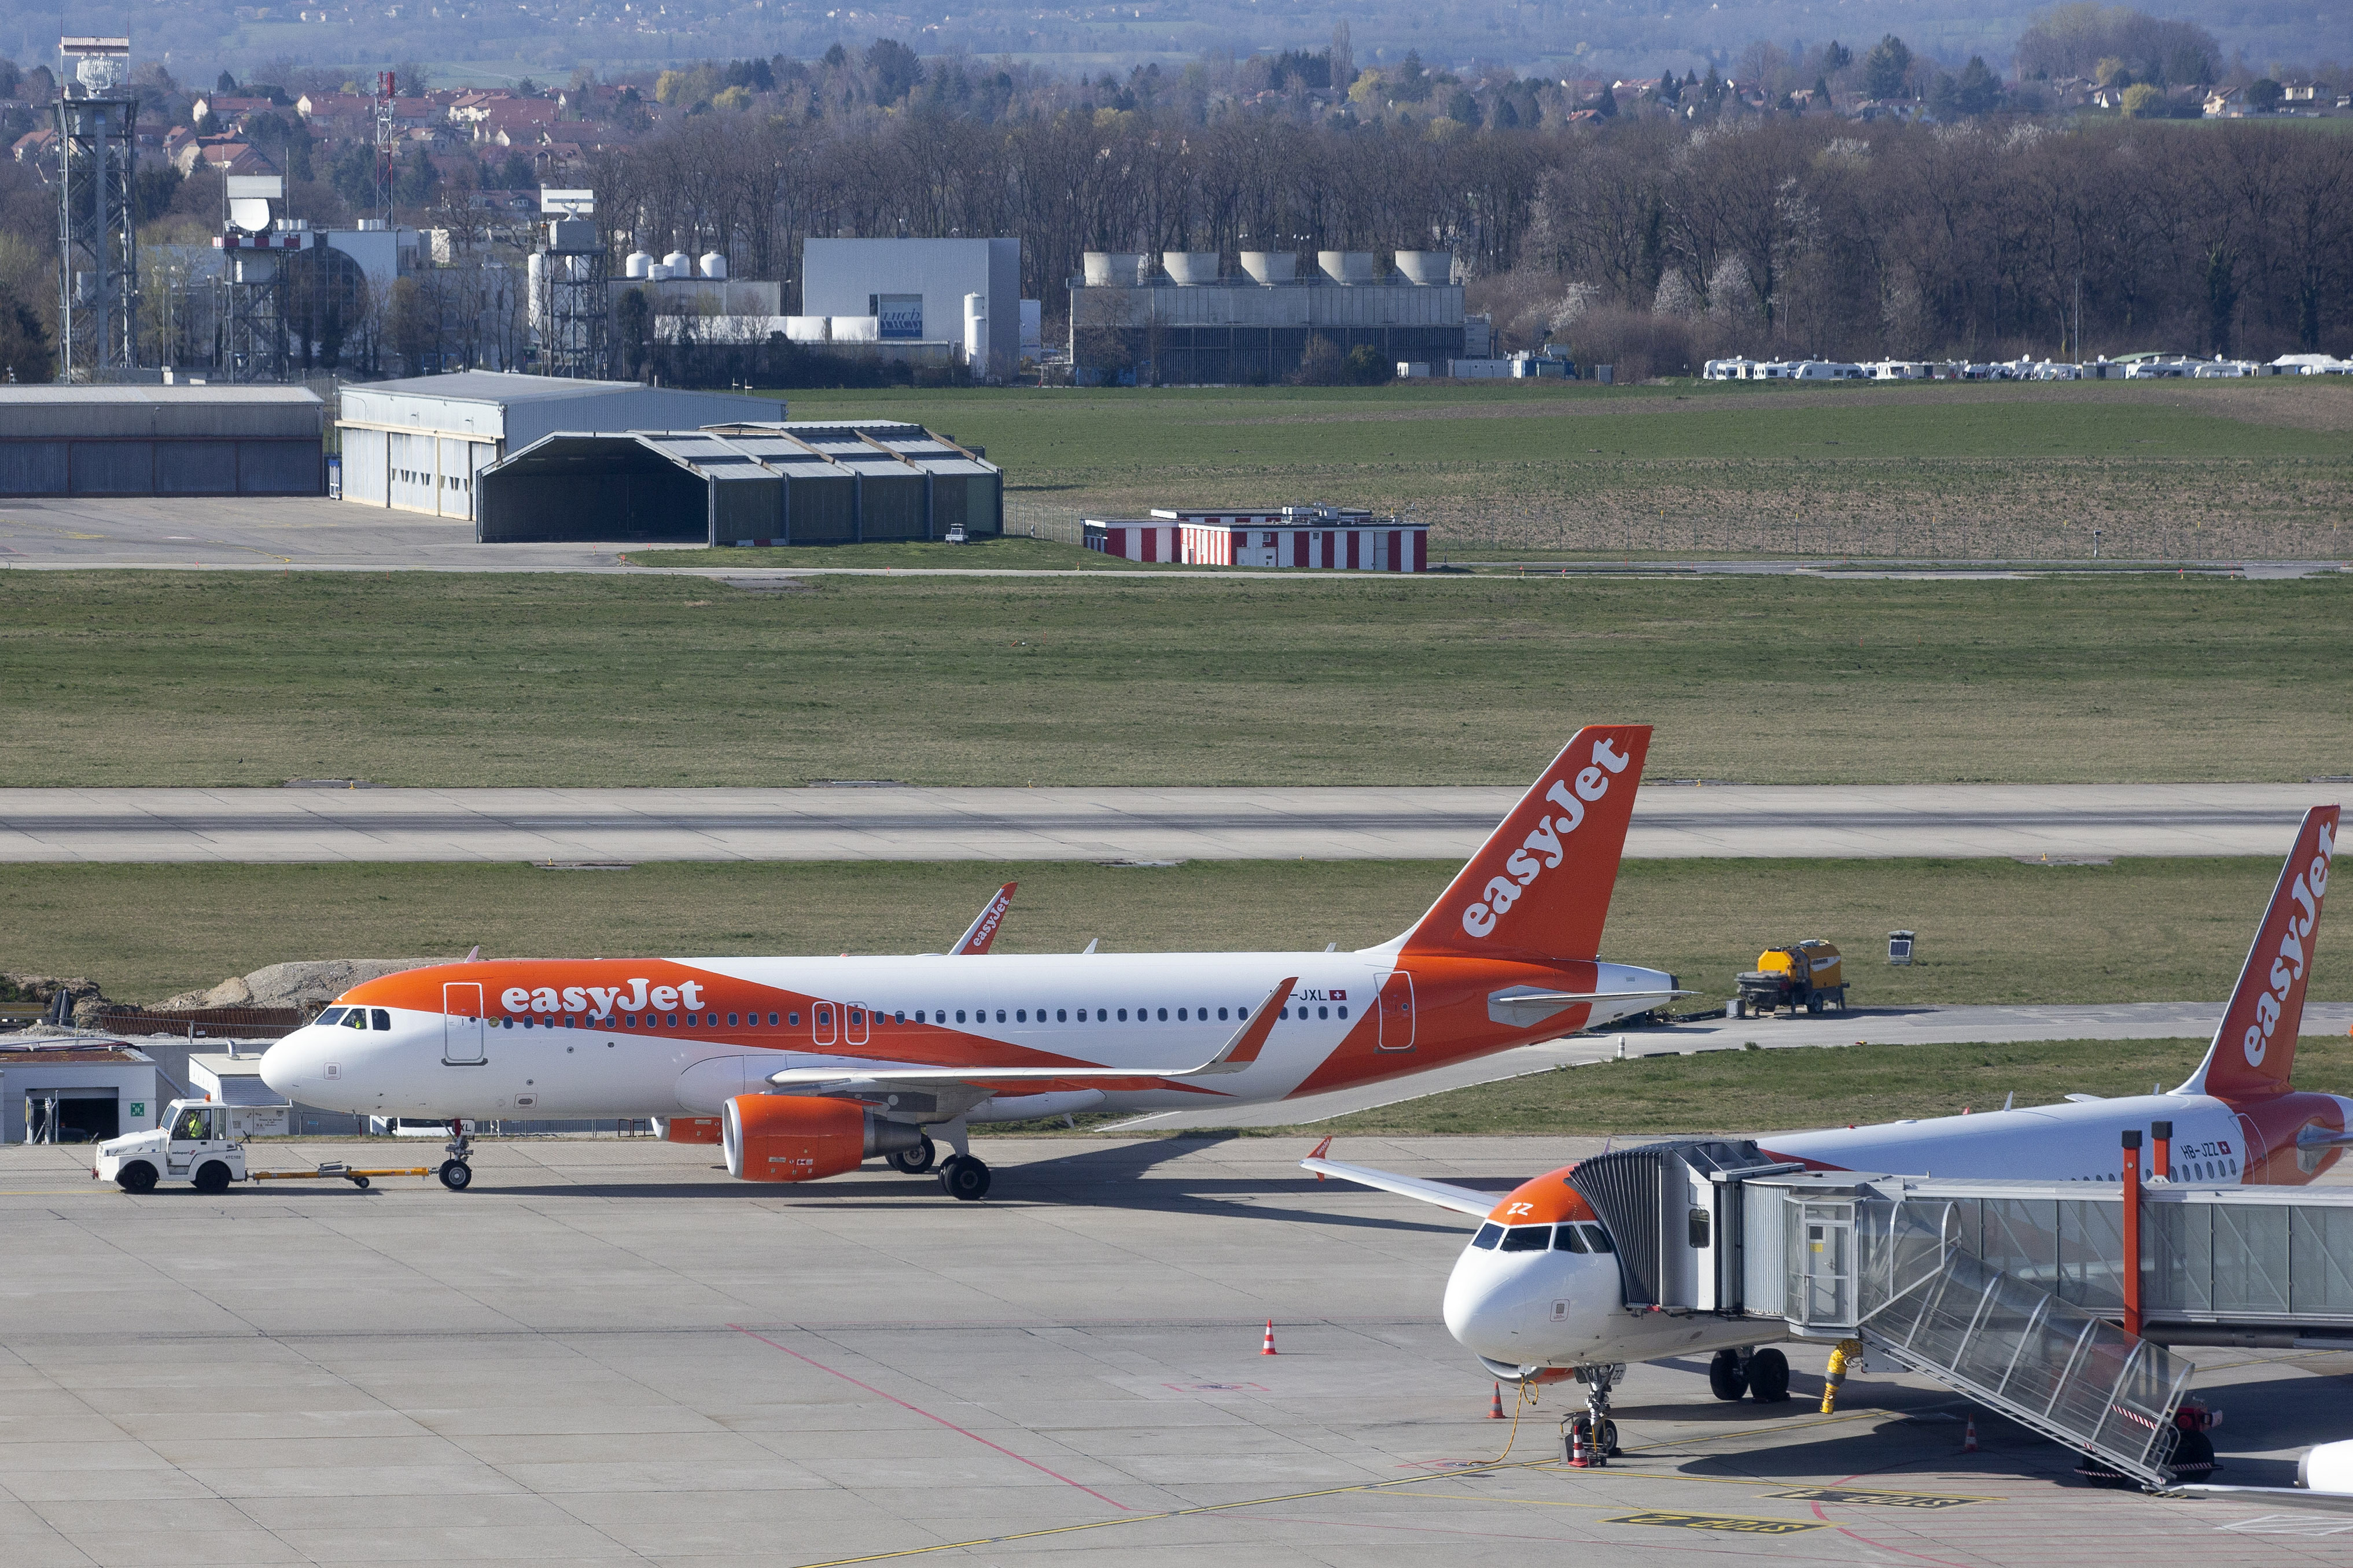 An easyJet aircraft is towed on the tarmac of the Geneve Aeroport, in Geneva, Switzerland on March 24, 2020.